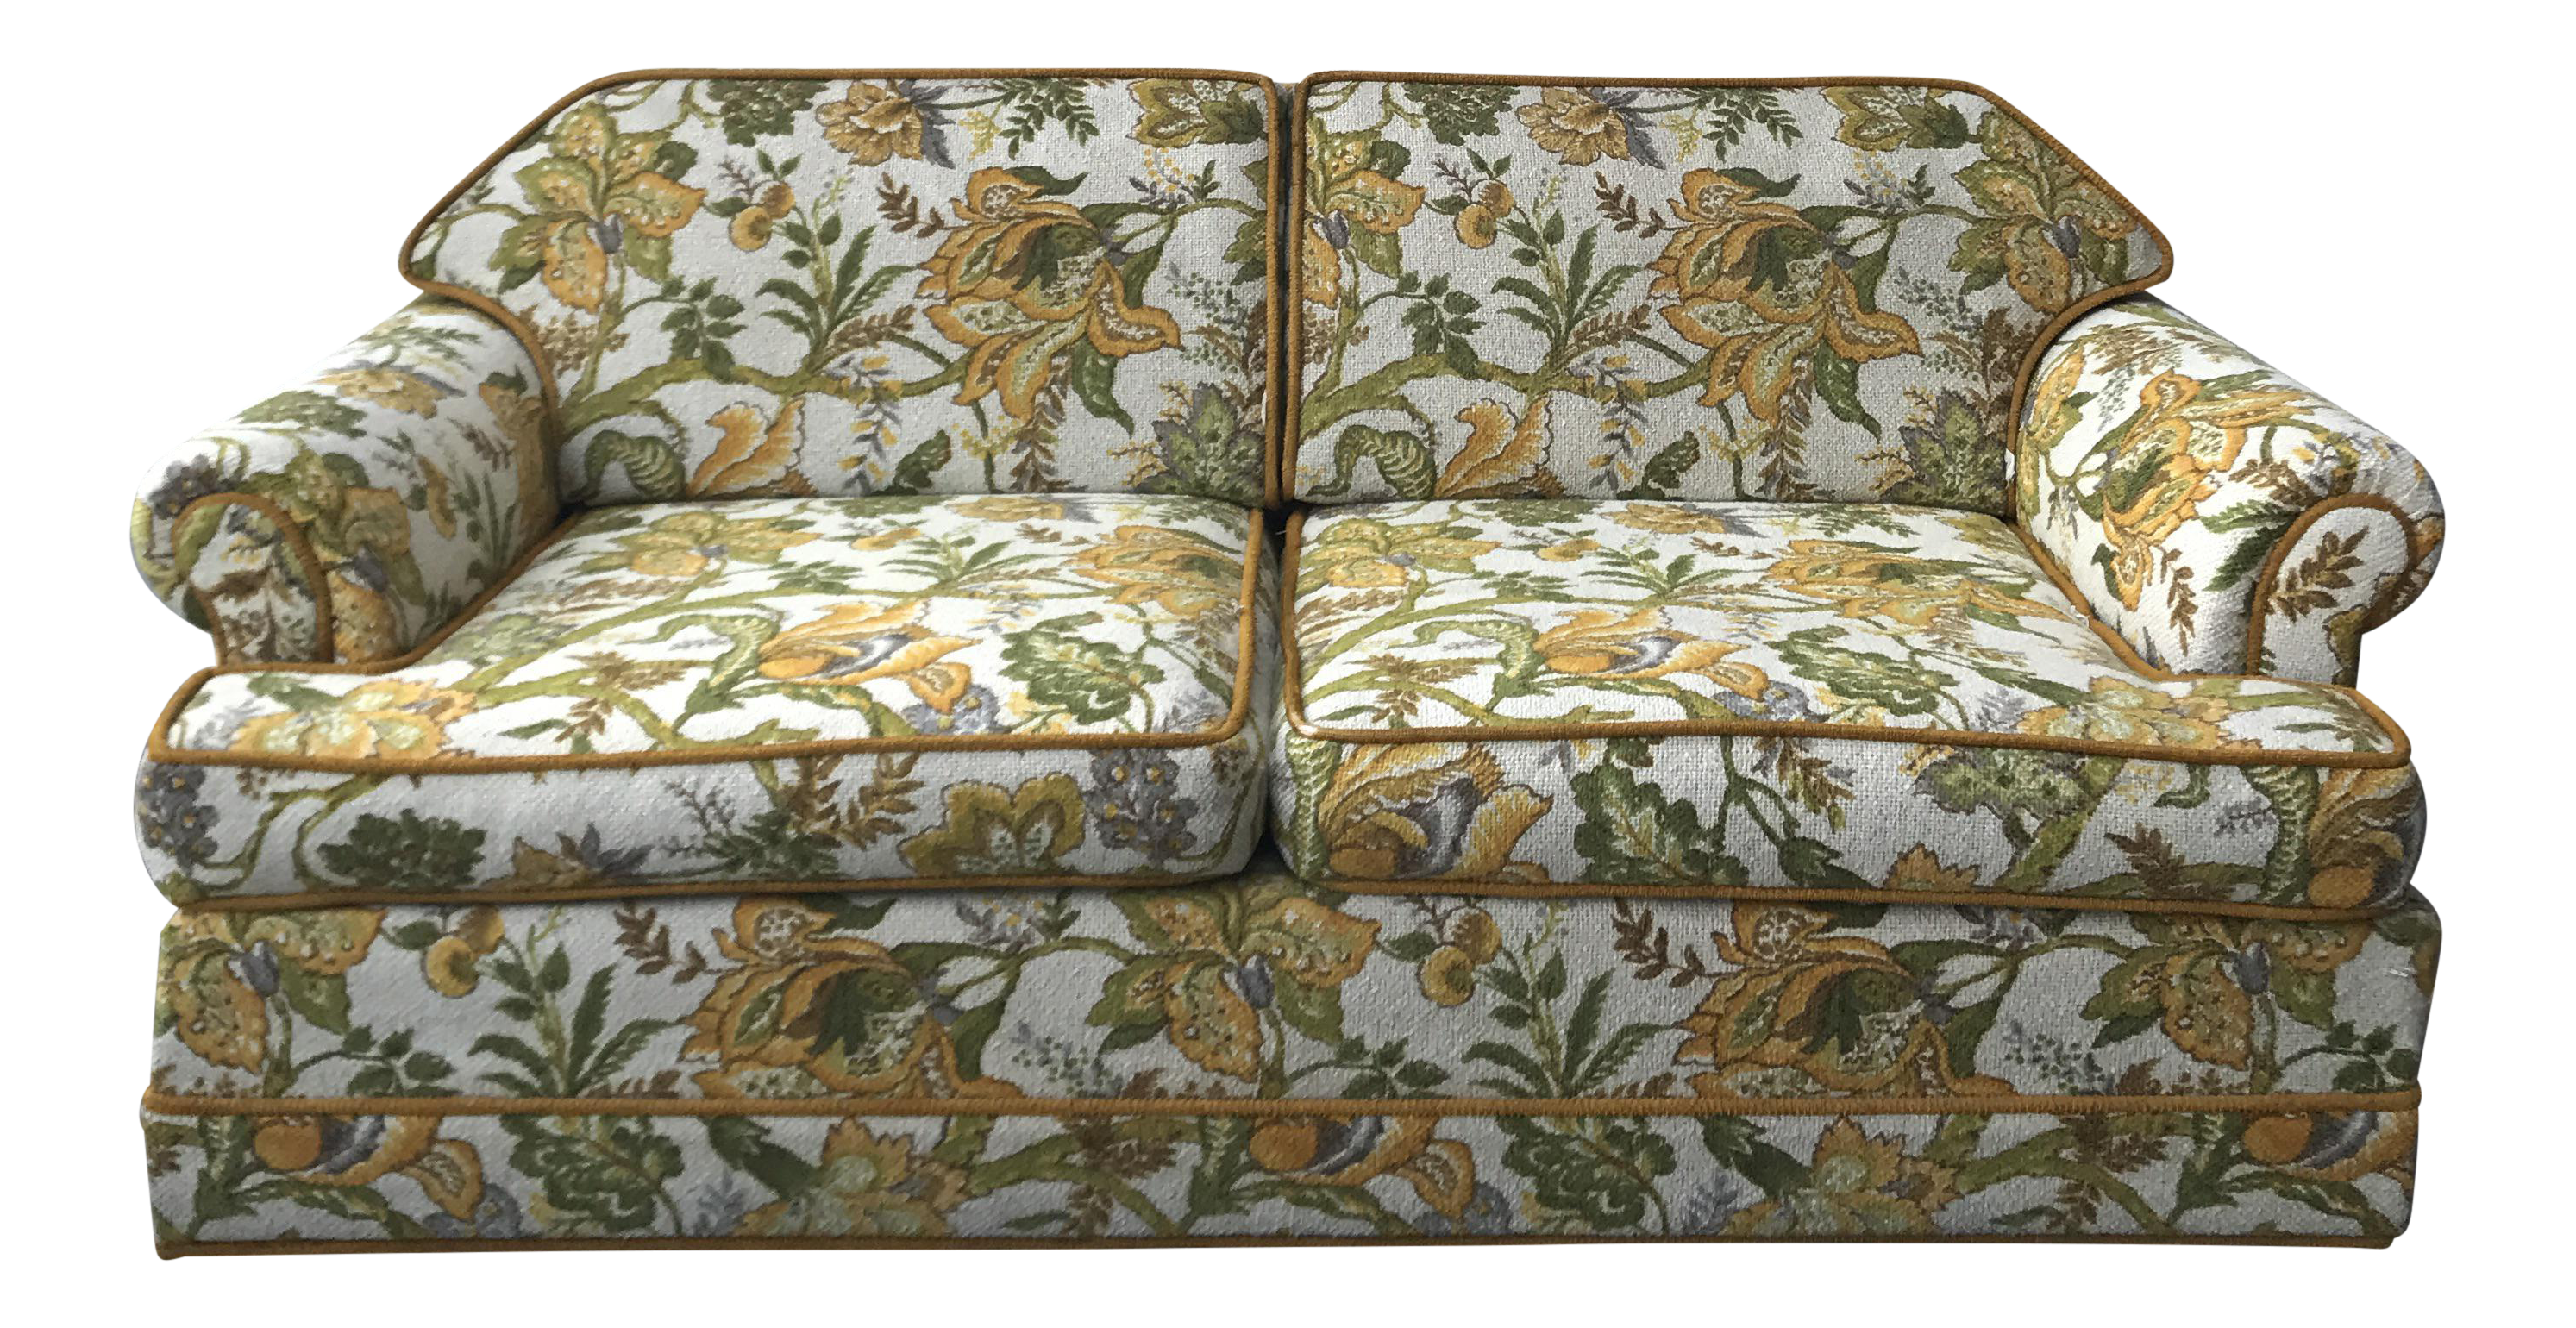 Modern couch png. Vintage mid century upholstered